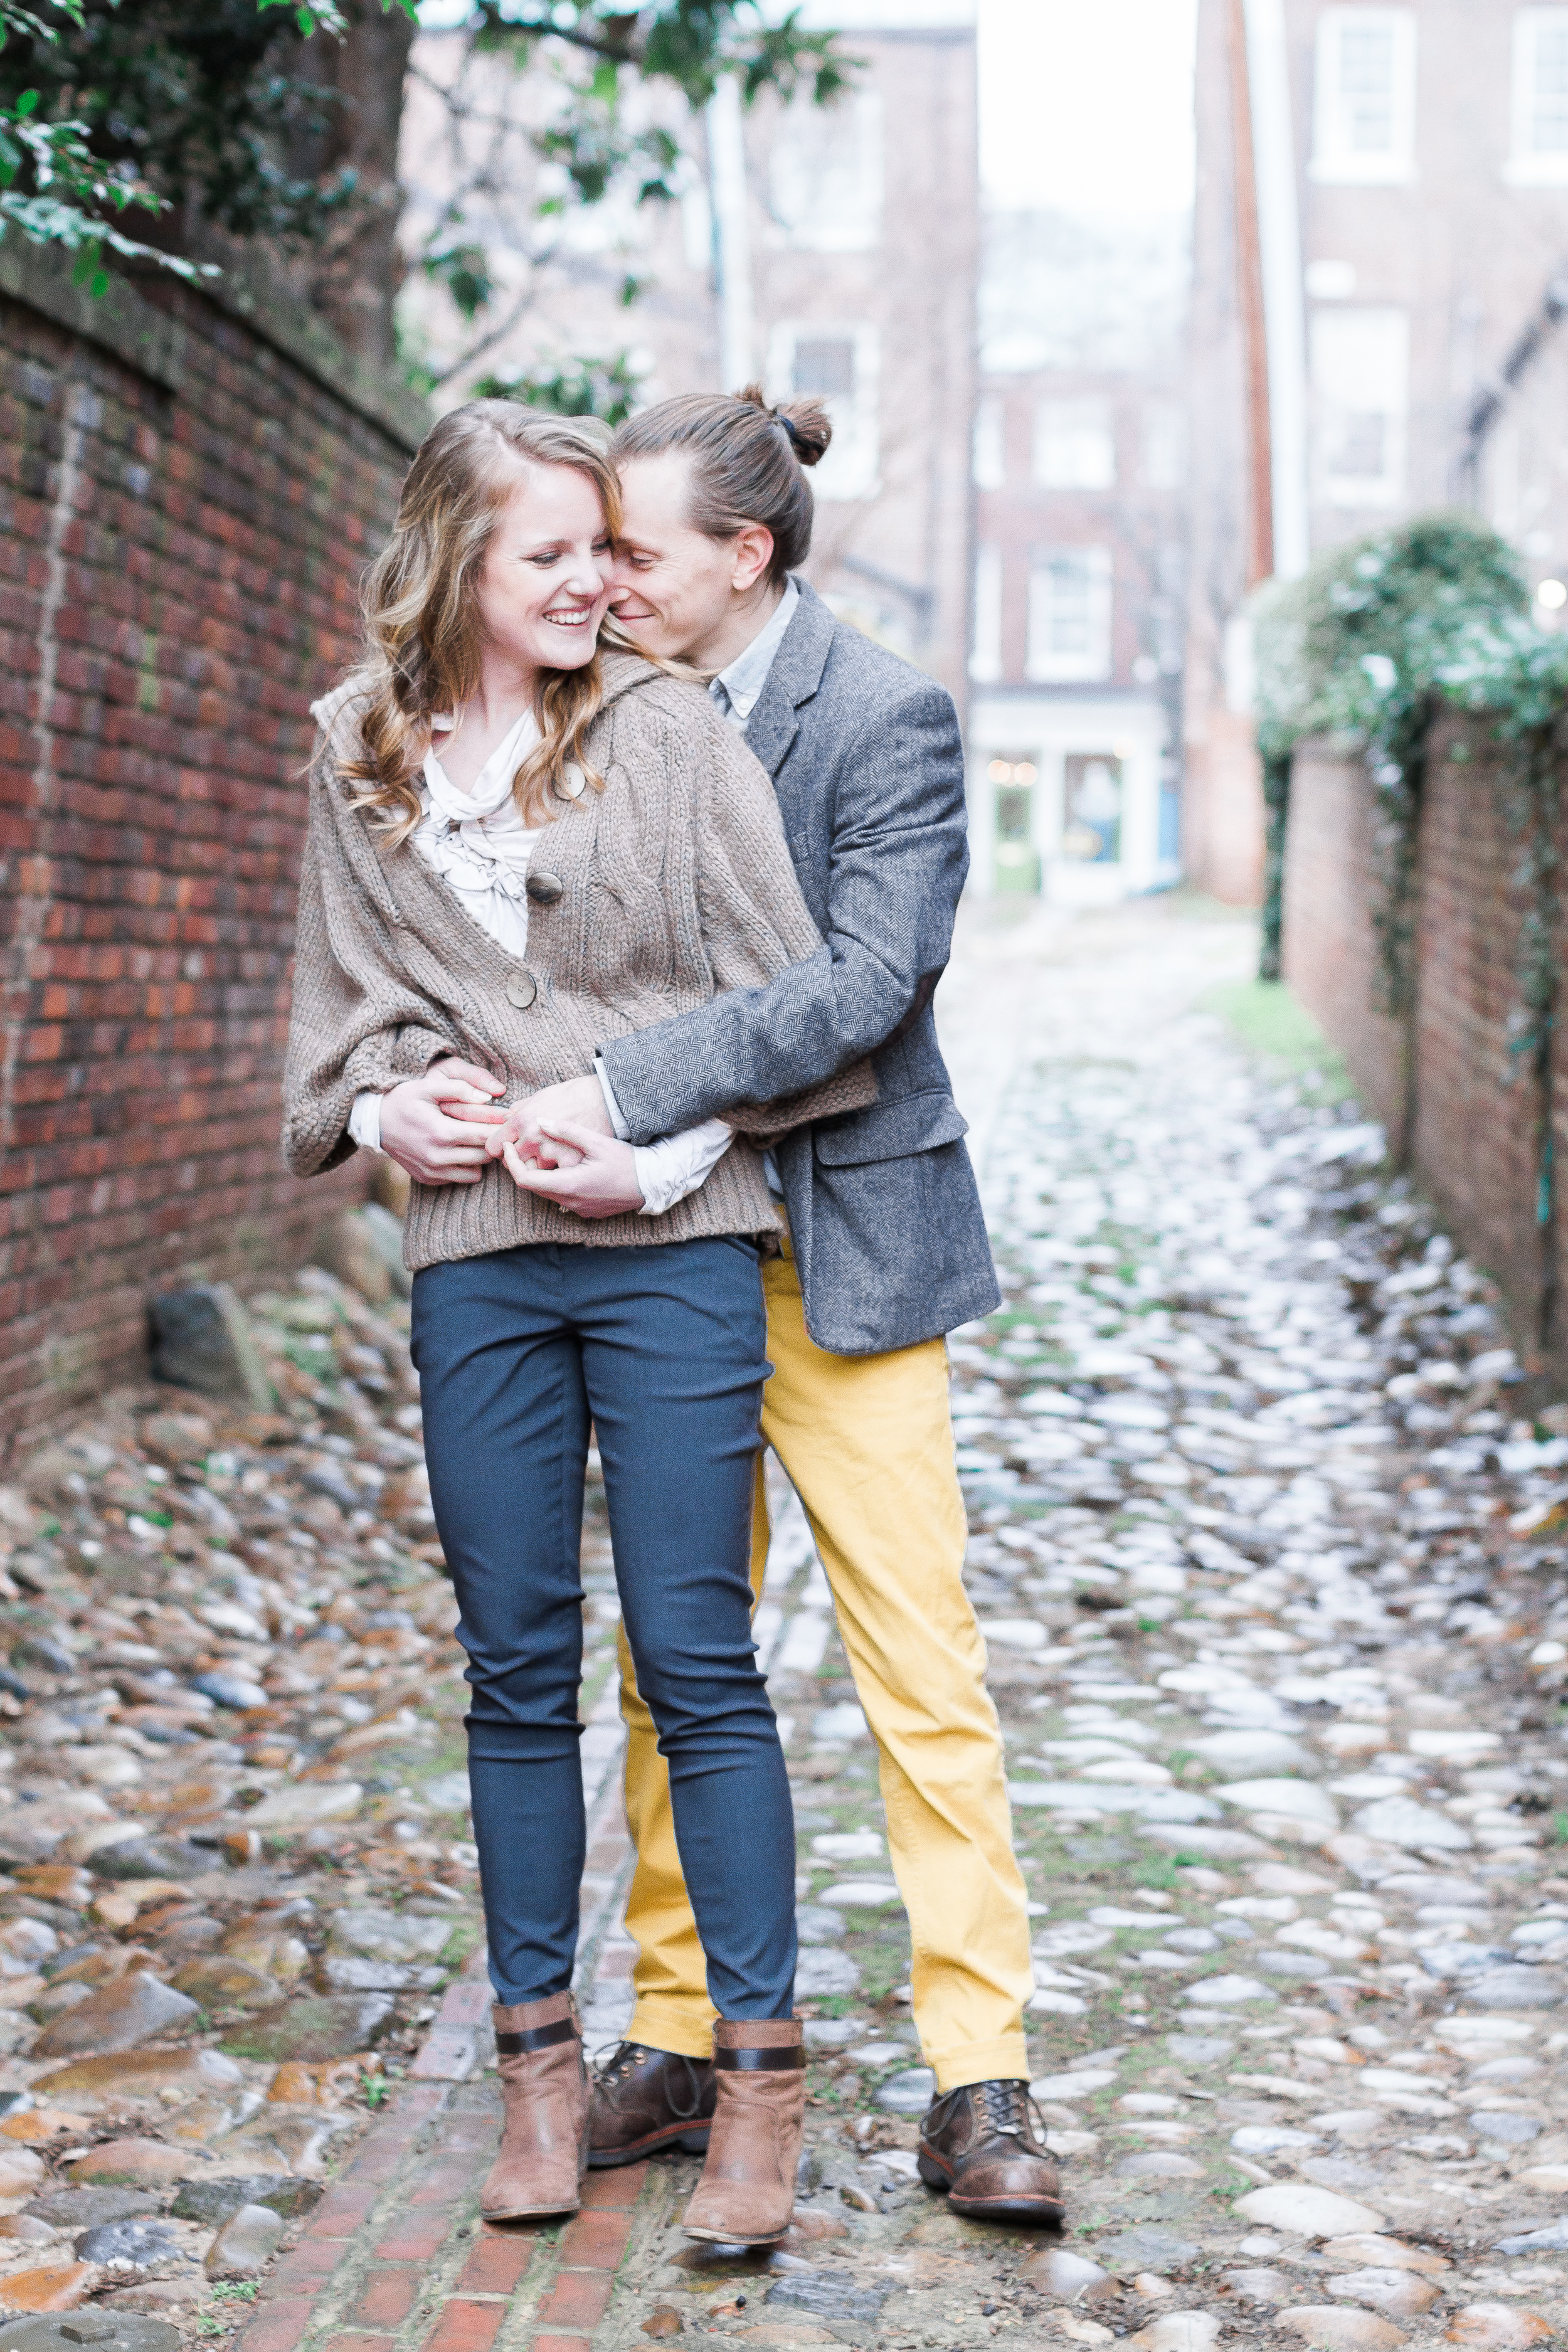 Old Town Alexandria Virginia Engagement | Andrea Rodway Photograhpy